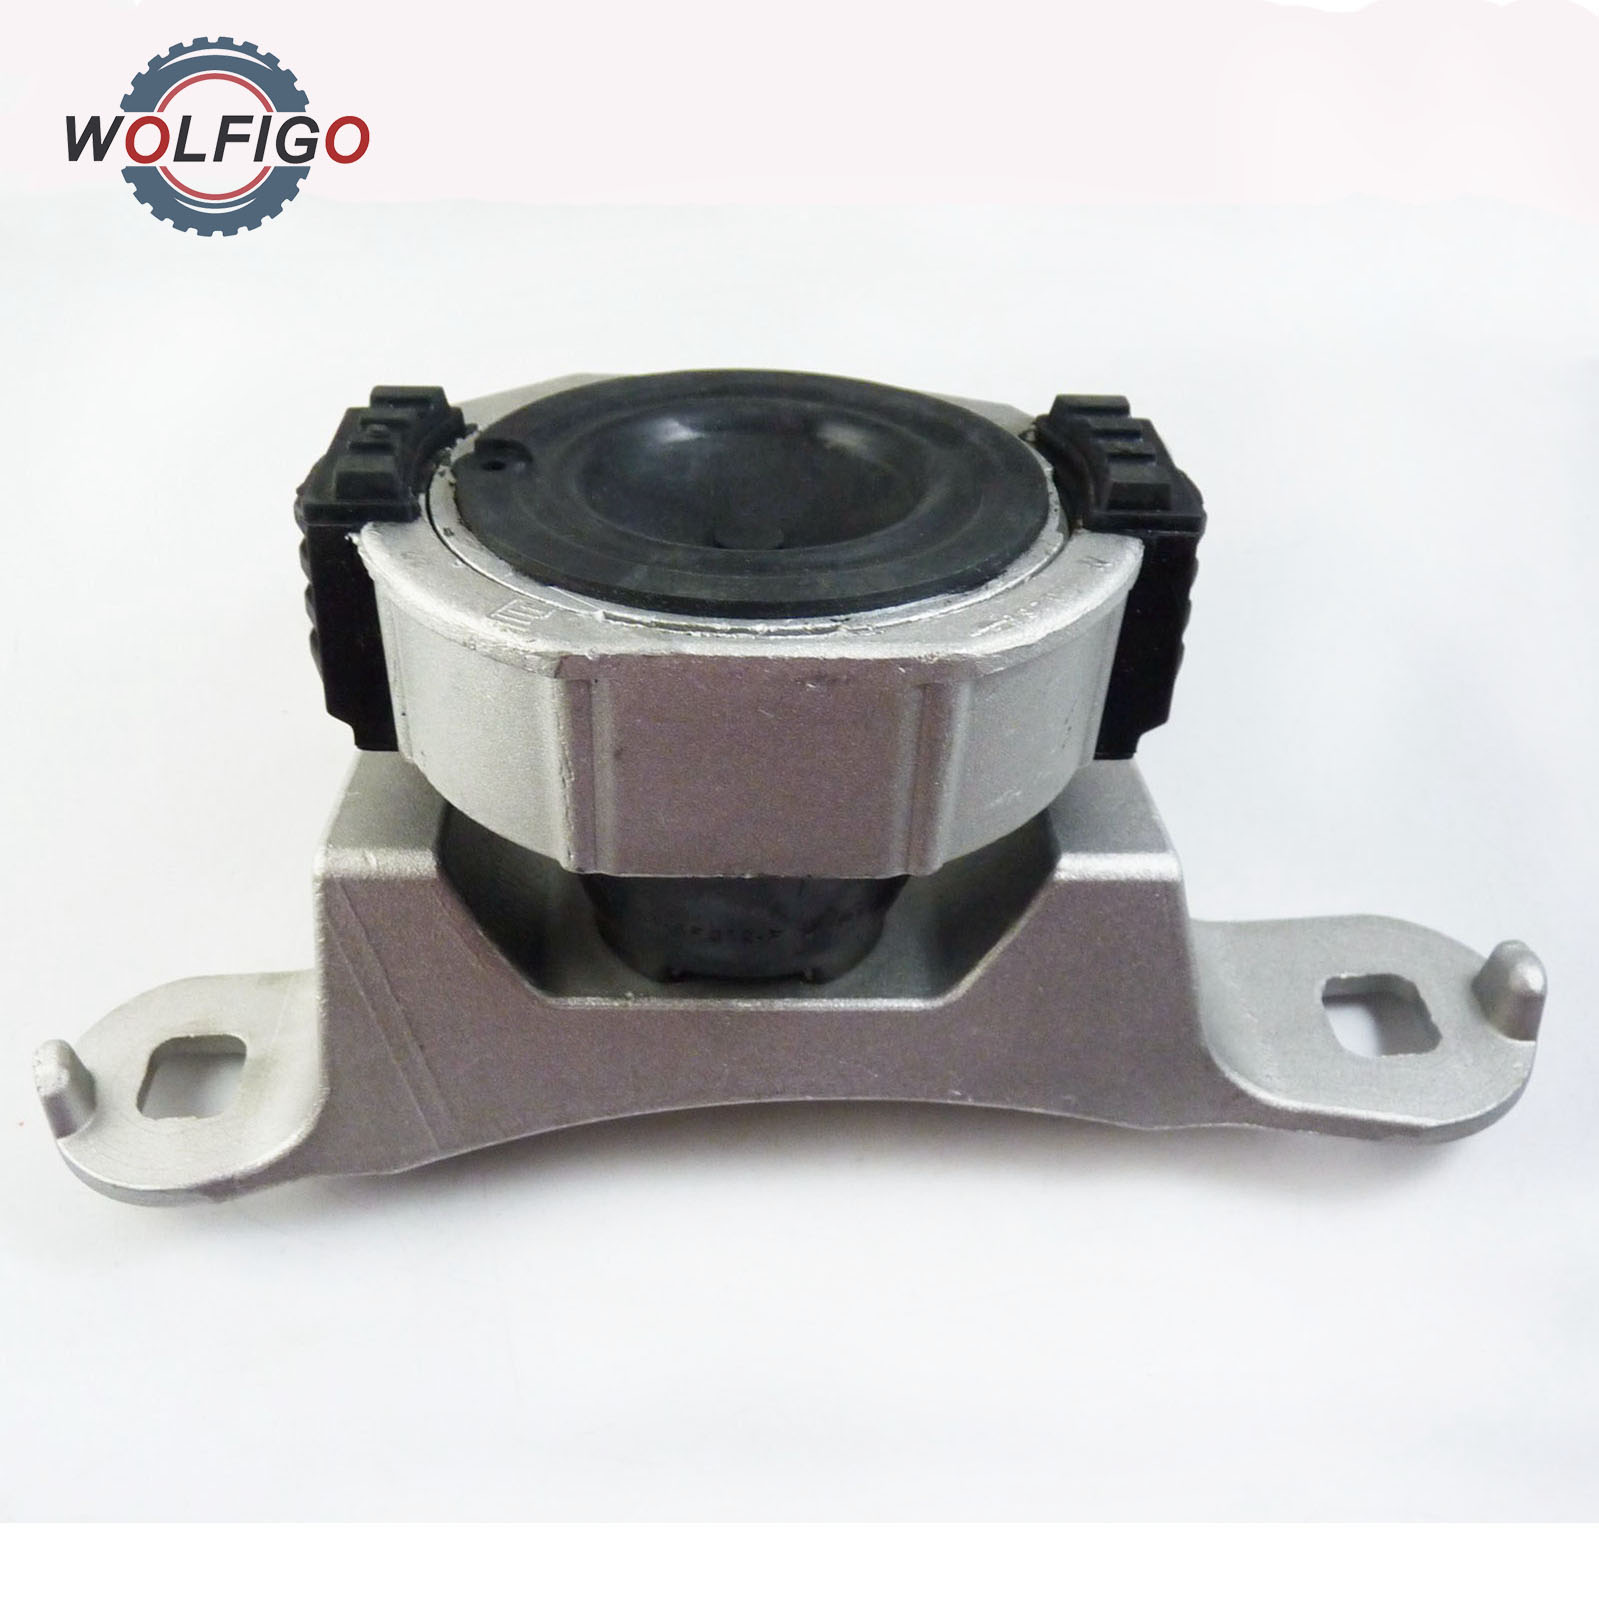 Wolfigo For Volvo S40 V50 C70 C30 Passenger Right Side Lower Engine Hvac Blower Motor Resistor W Wiring Harness 0407 Buick Rainier Mount 31262676 62432676 In Mounts From Automobiles Motorcycles On